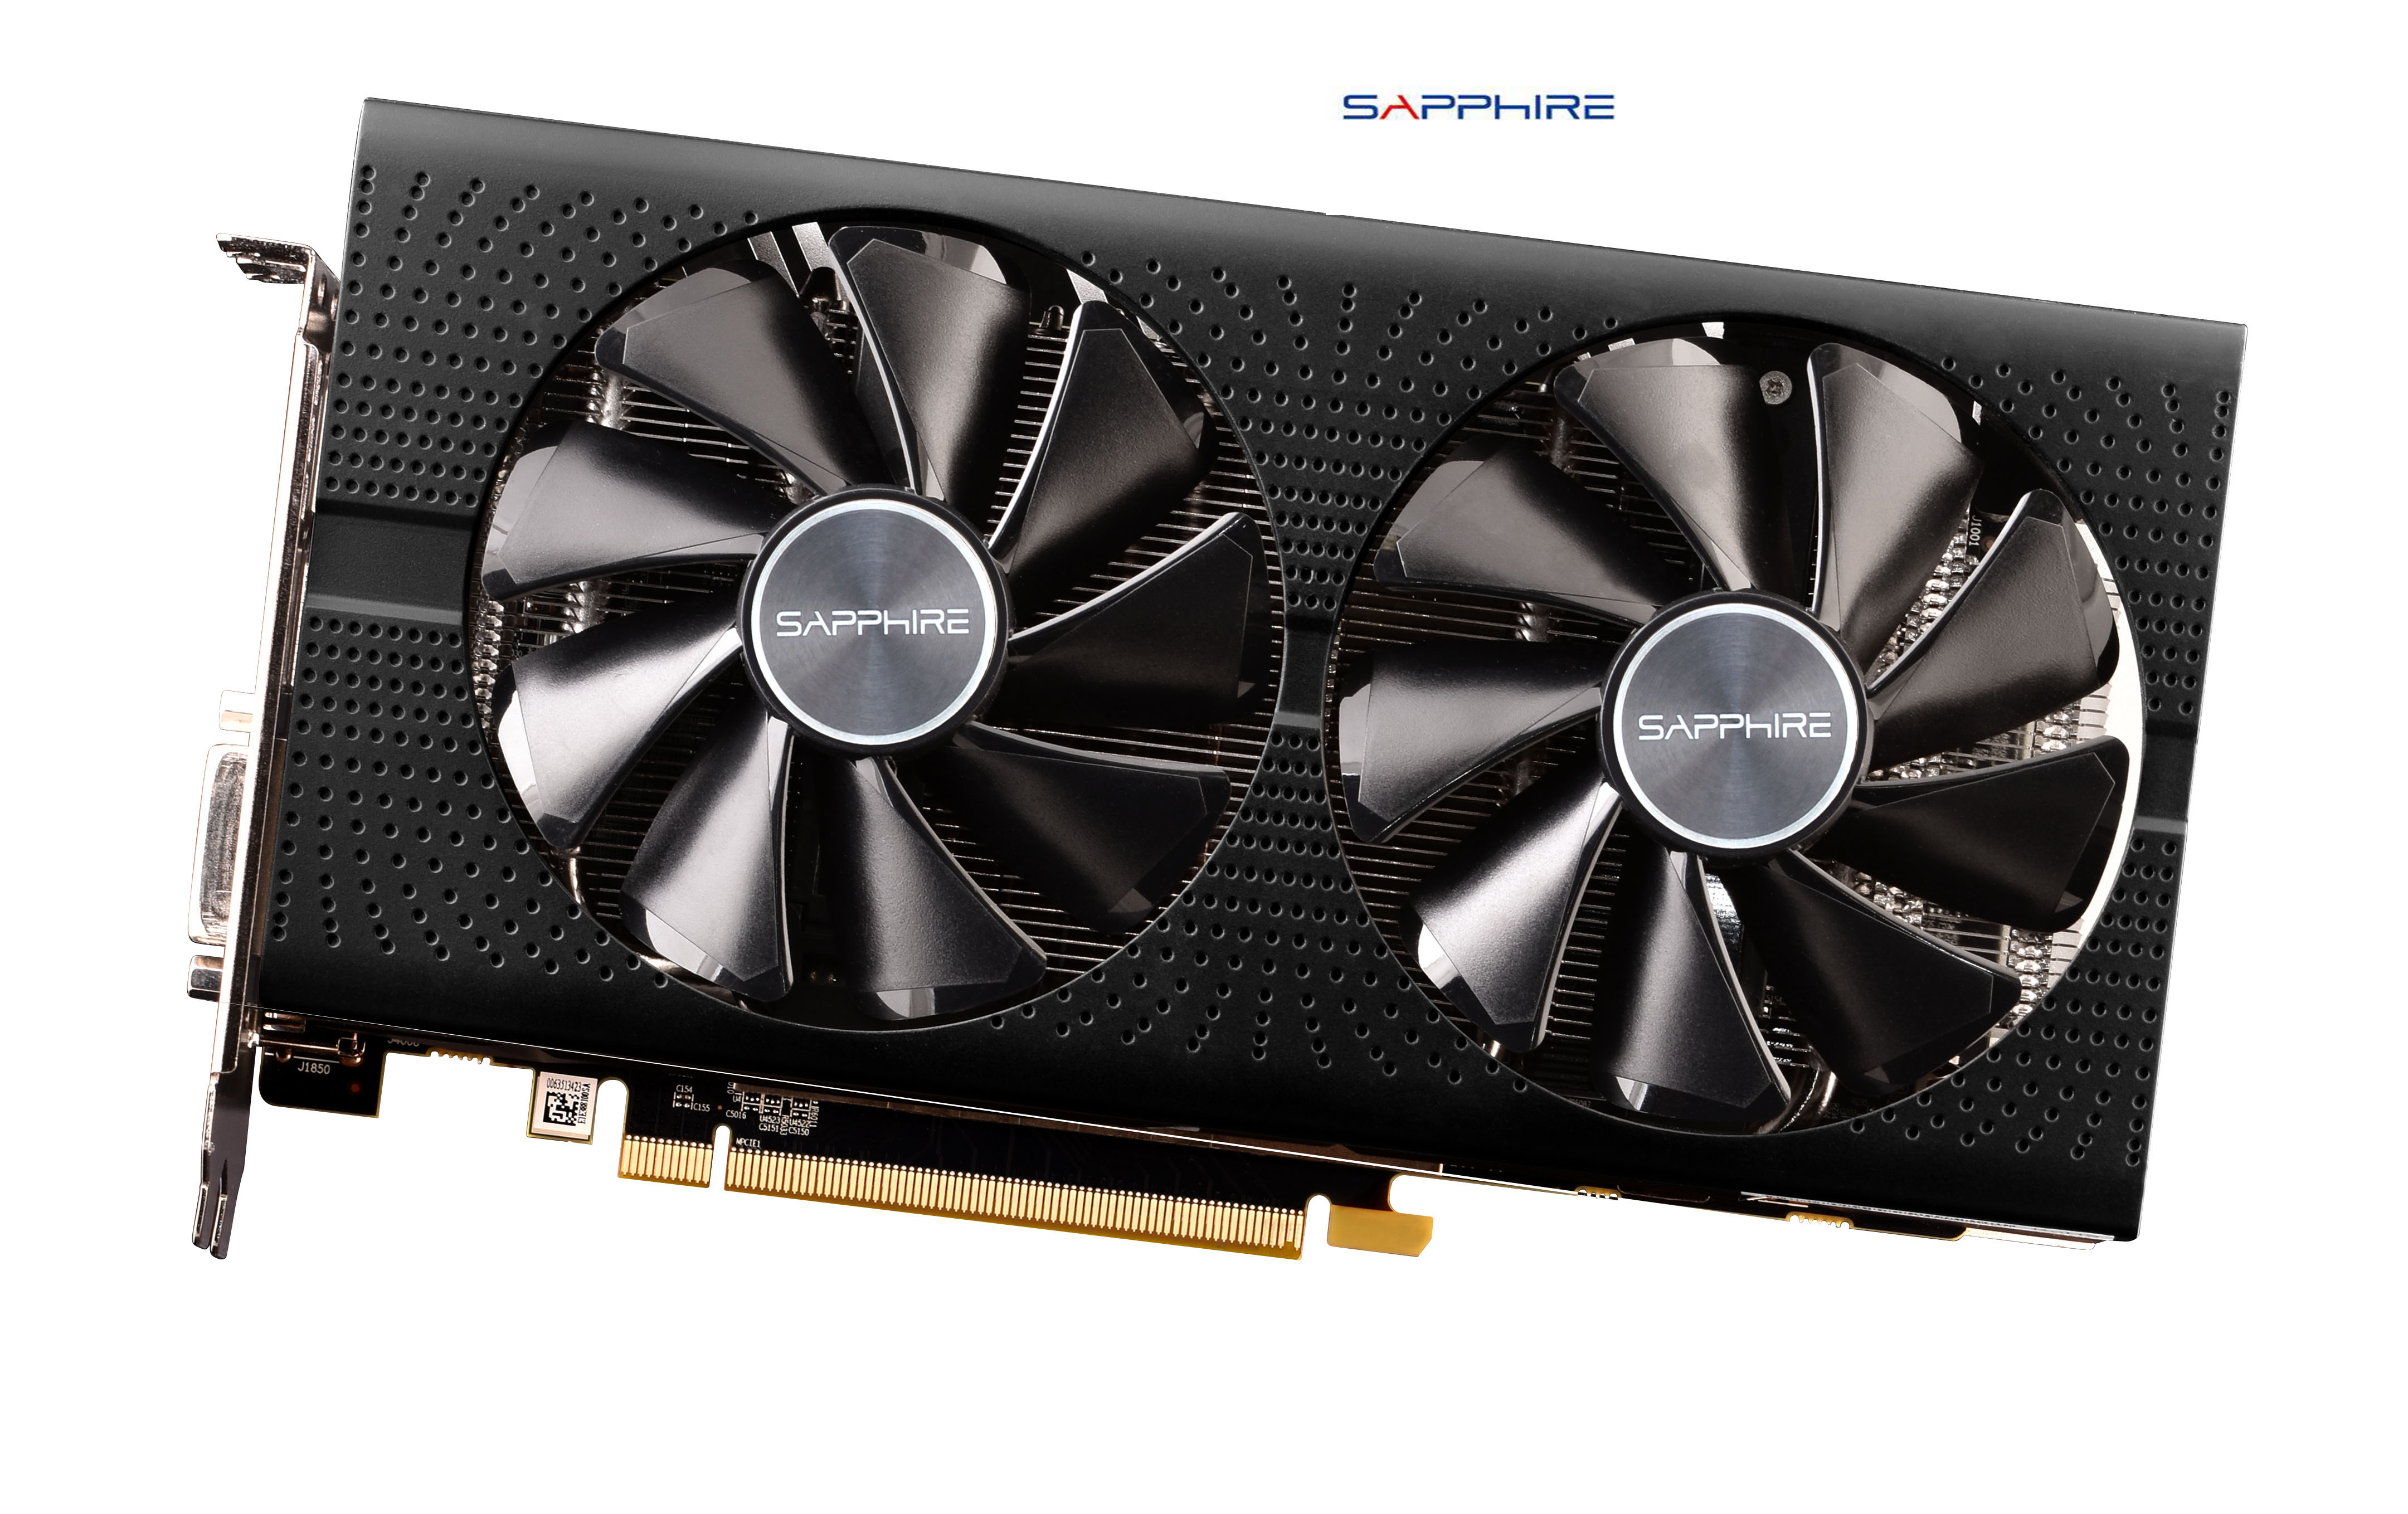 Used,SAPPHIRE Video Card RX 580 4GB 256Bit GDDR5 Graphics Cards For AMD RX 500 Series VGA Cards RX580 DisplayPort DVI